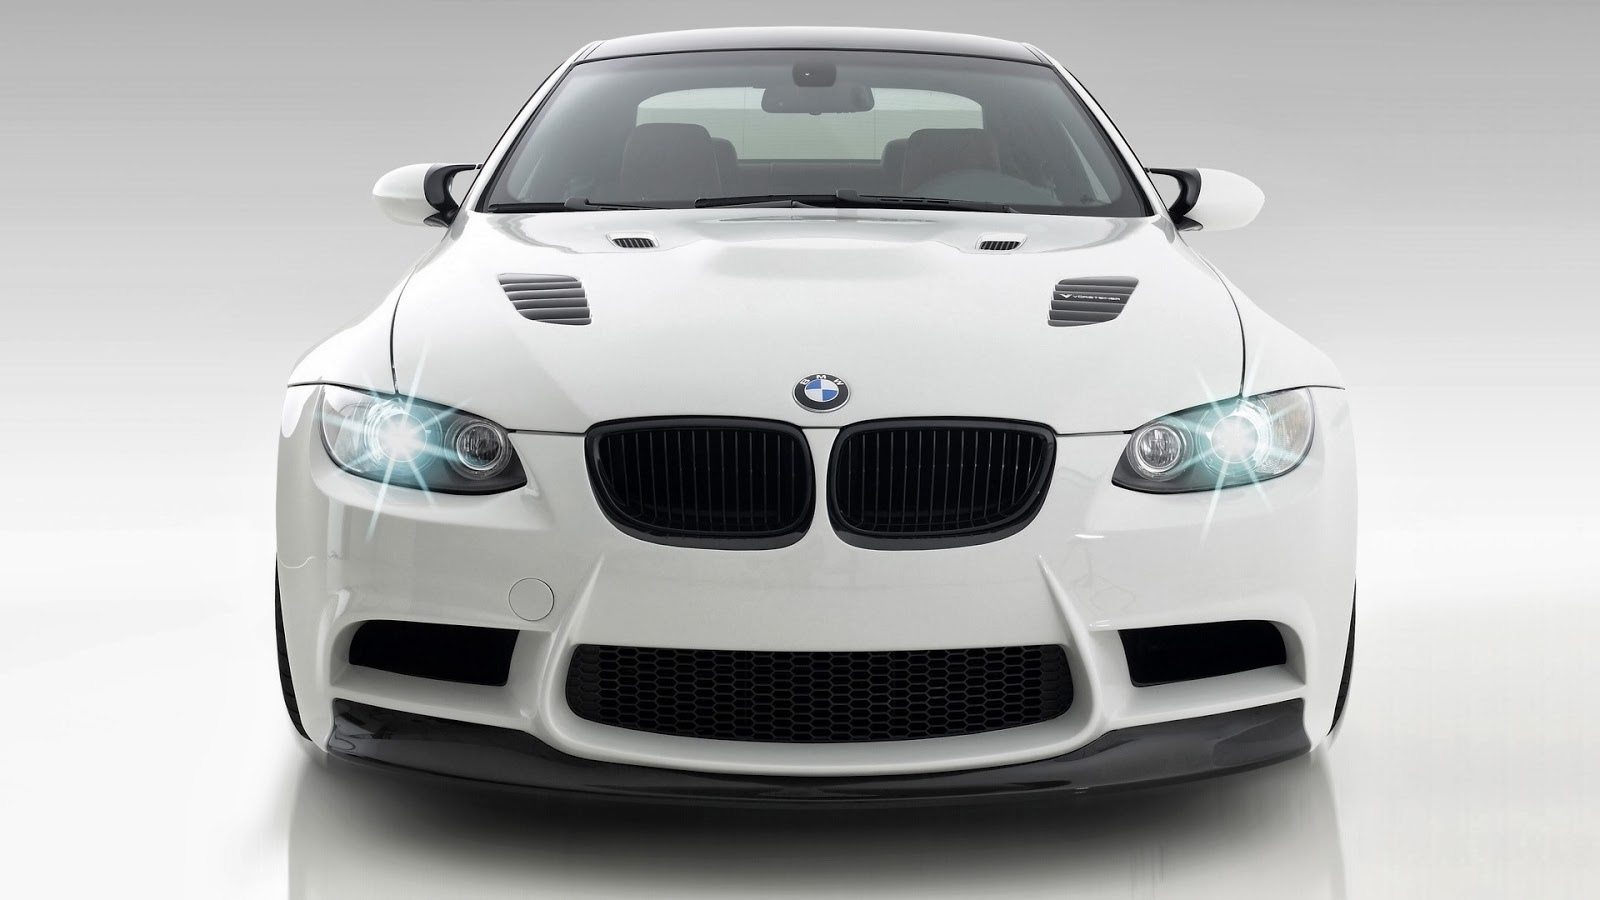 Hd Bmw Car Wallpapers 1080p Nice Pics Gallery